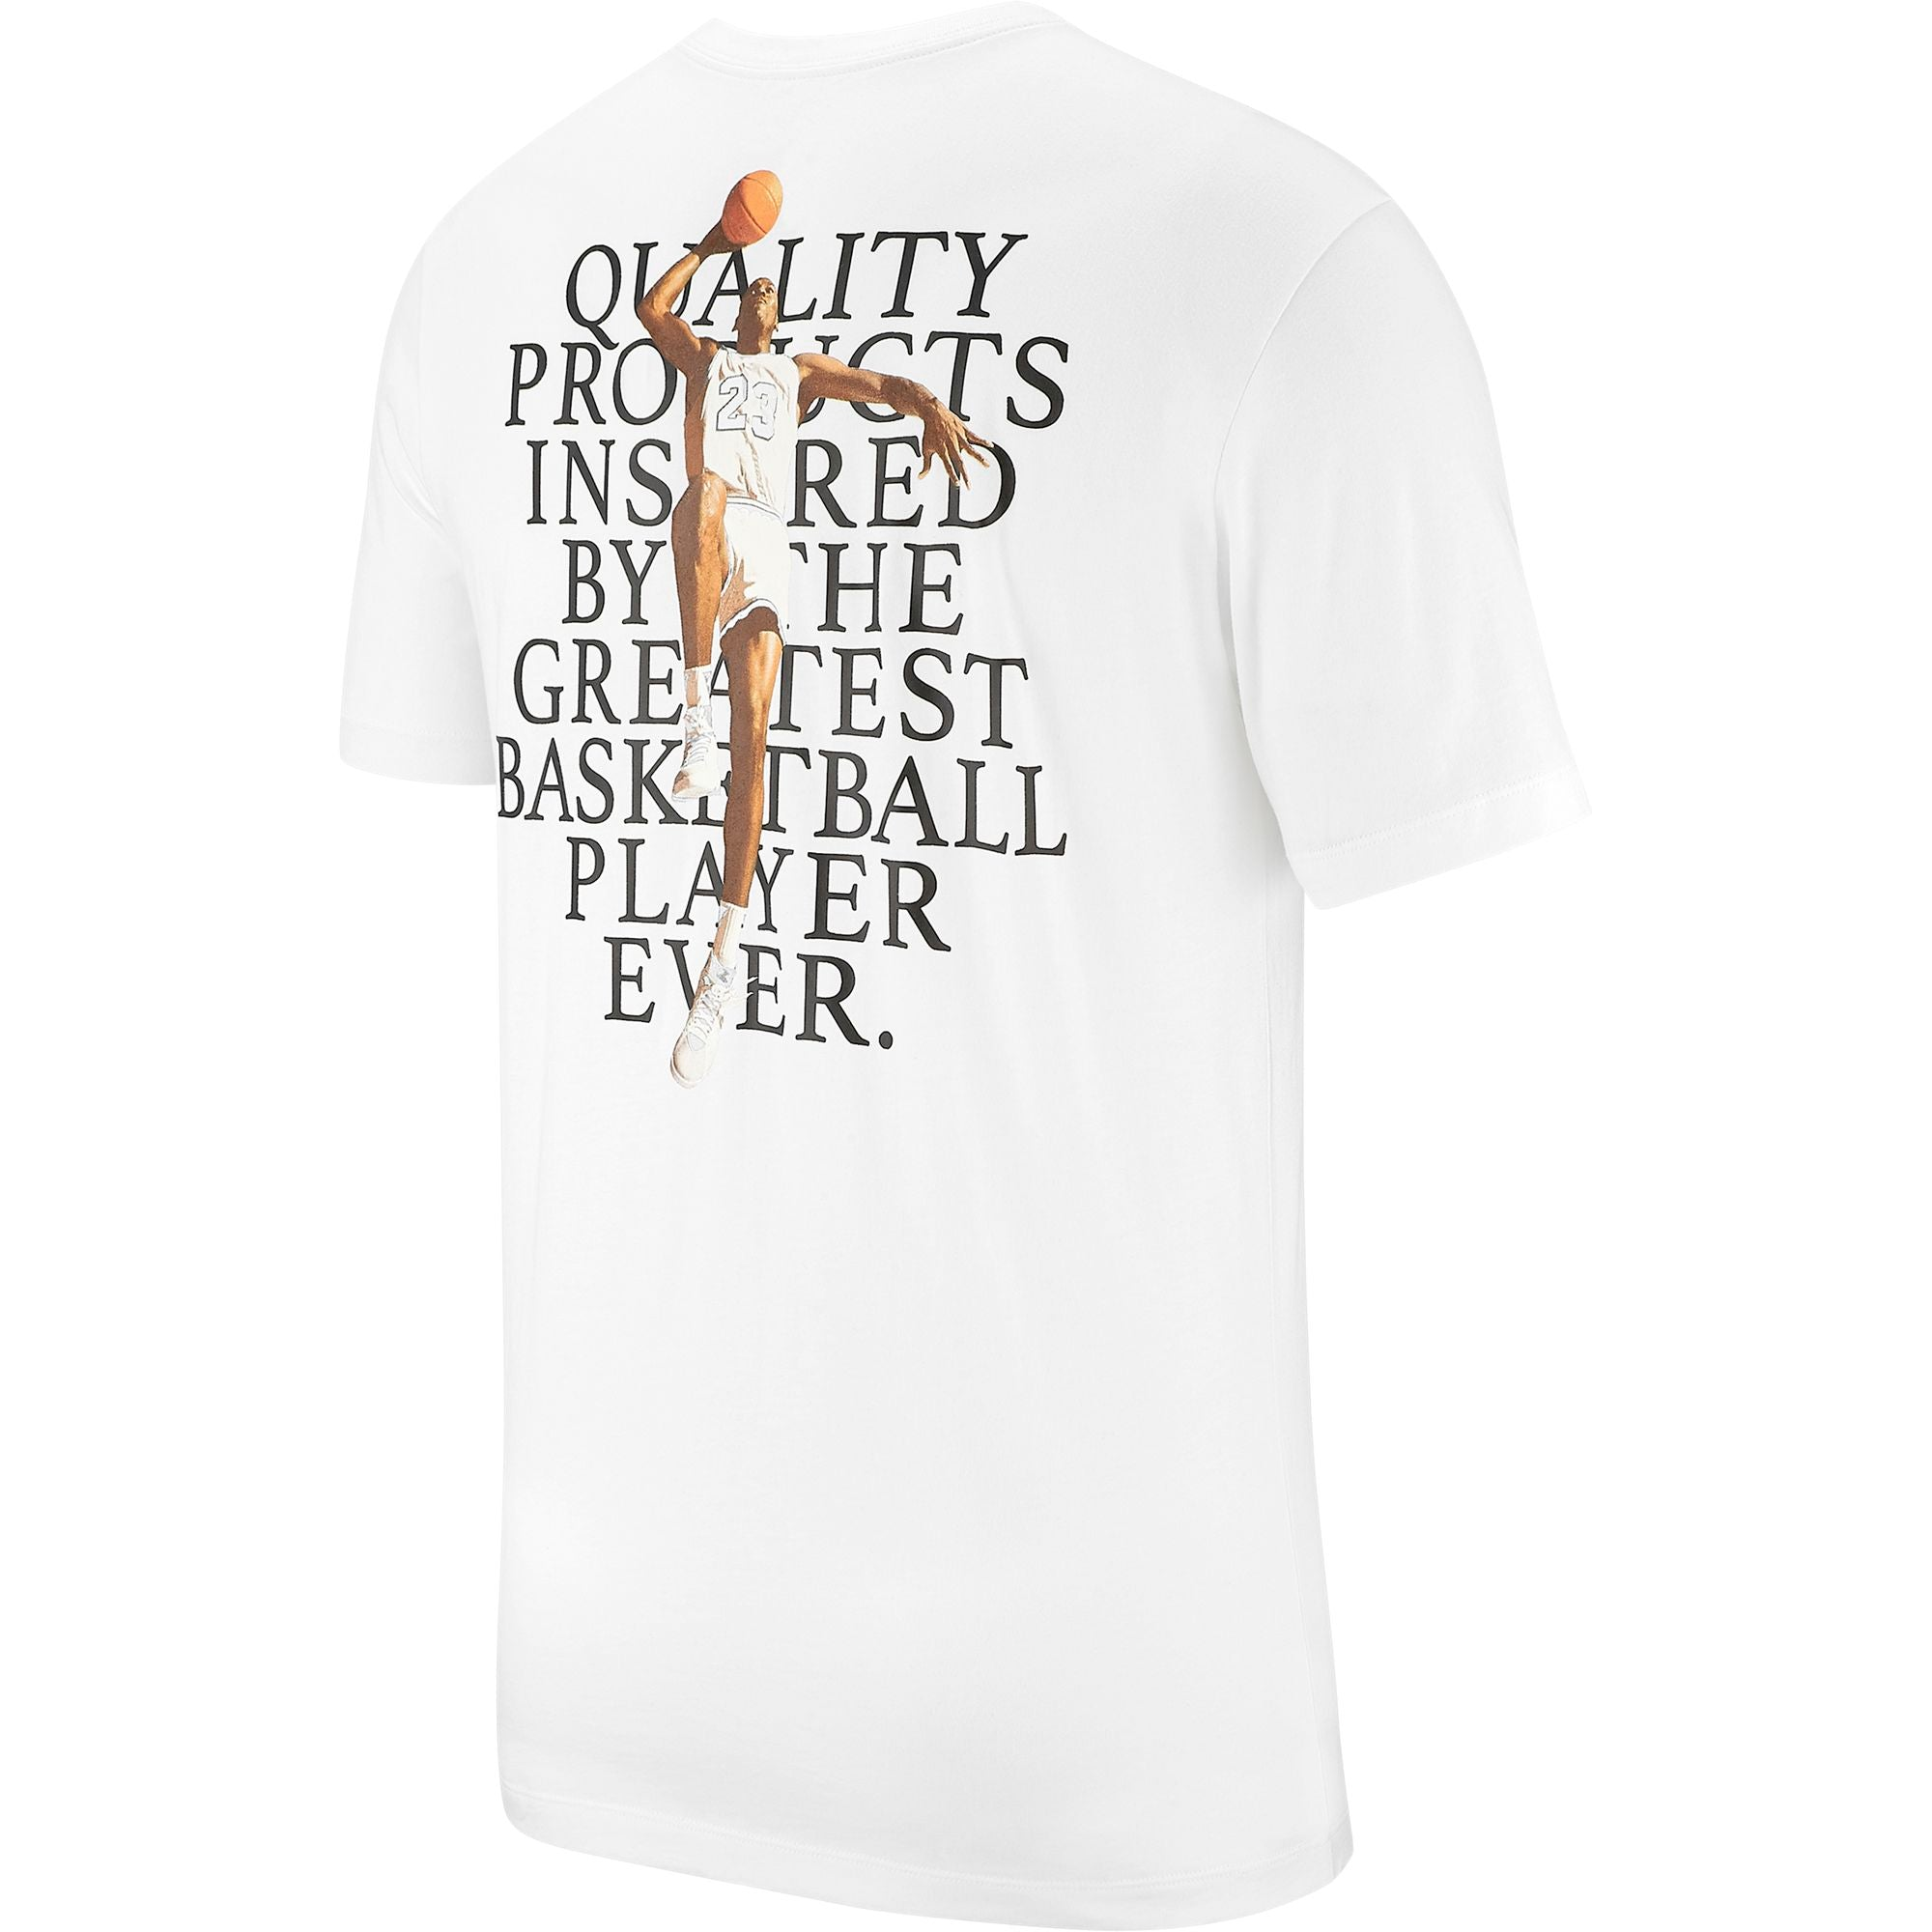 Nike Jordan Photo Graphic Basketball Tee - White/Black